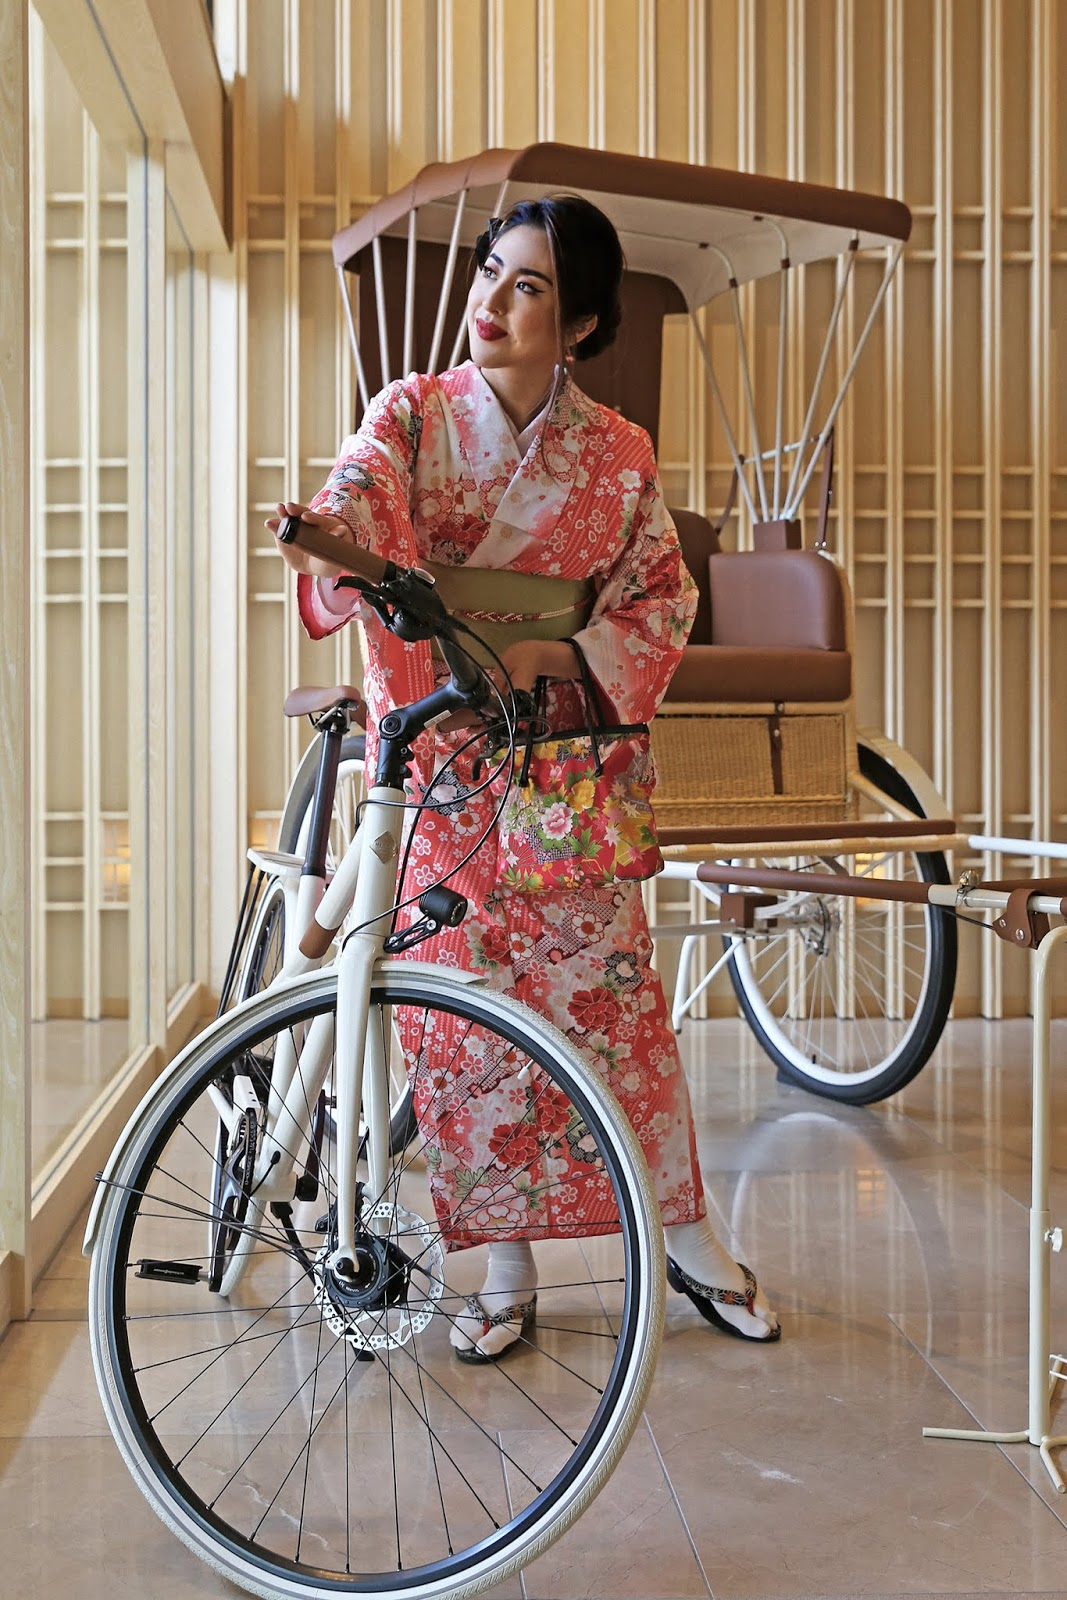 My review of my luxurious and refined stay at Four Seasons Kyoto, the best new luxury hotel in Japan - Posh, Broke, & Bored